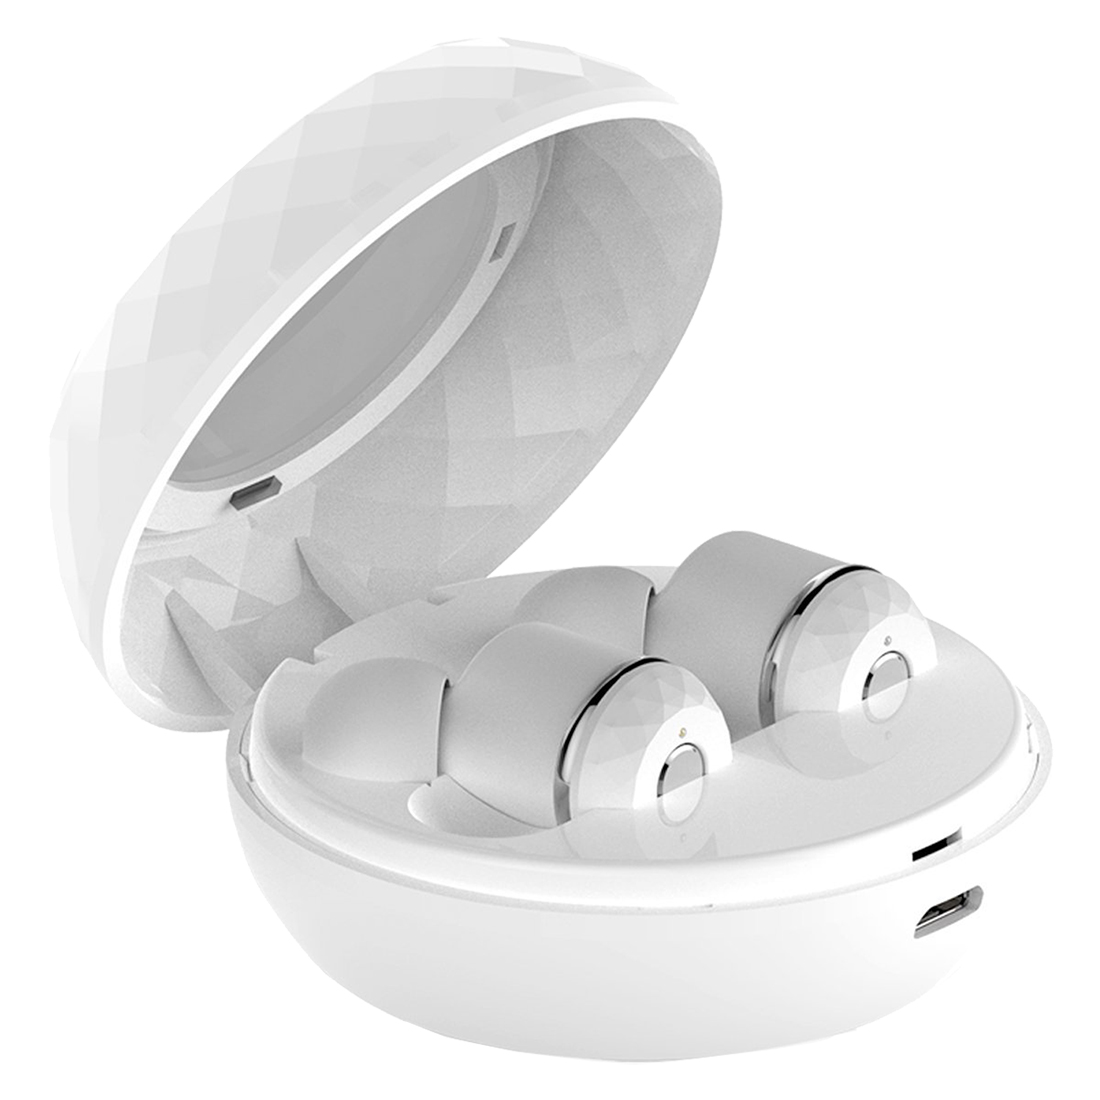 Wireless Earbuds, True Wireless Stereo Bluetooth V4.1 Headphones with Portable Charging Case & Noise Reduction letike wp 304 bluetooth earbuds